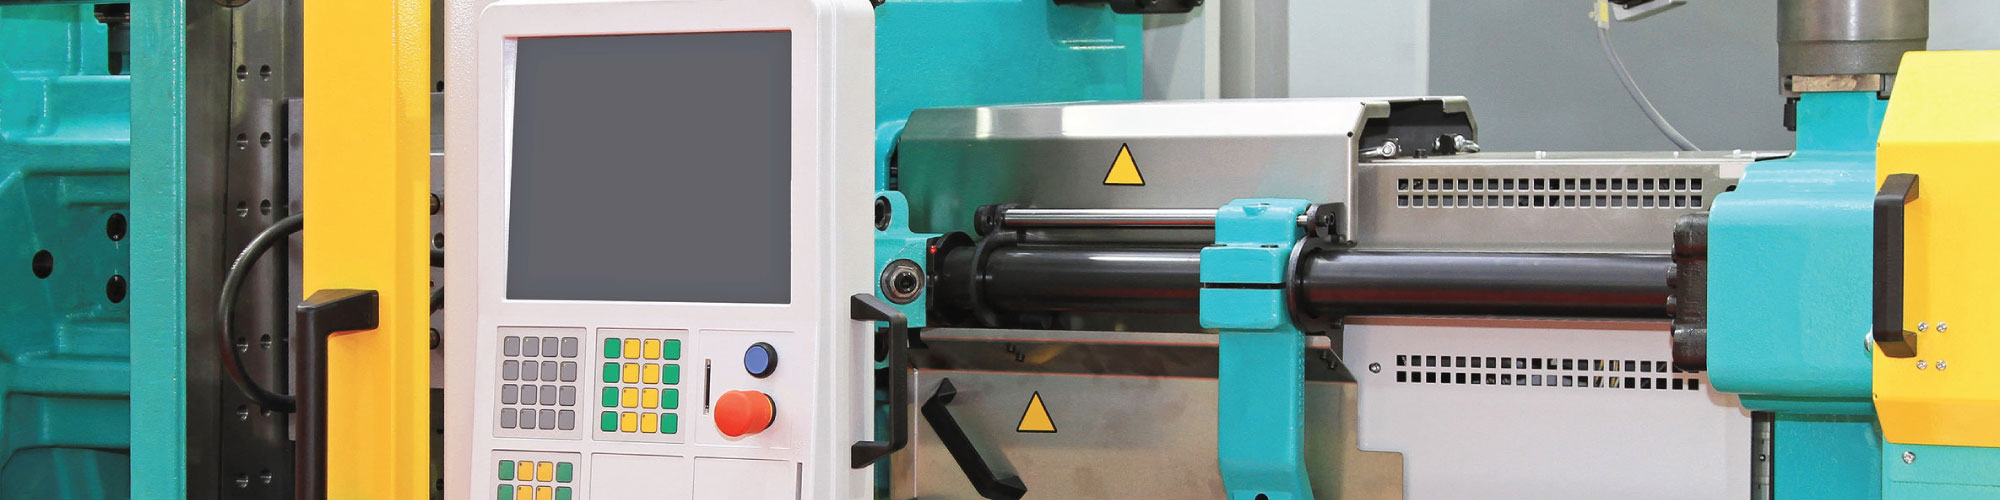 Plastic Injection Molding Defects to Avoid with Quality Mold Shop